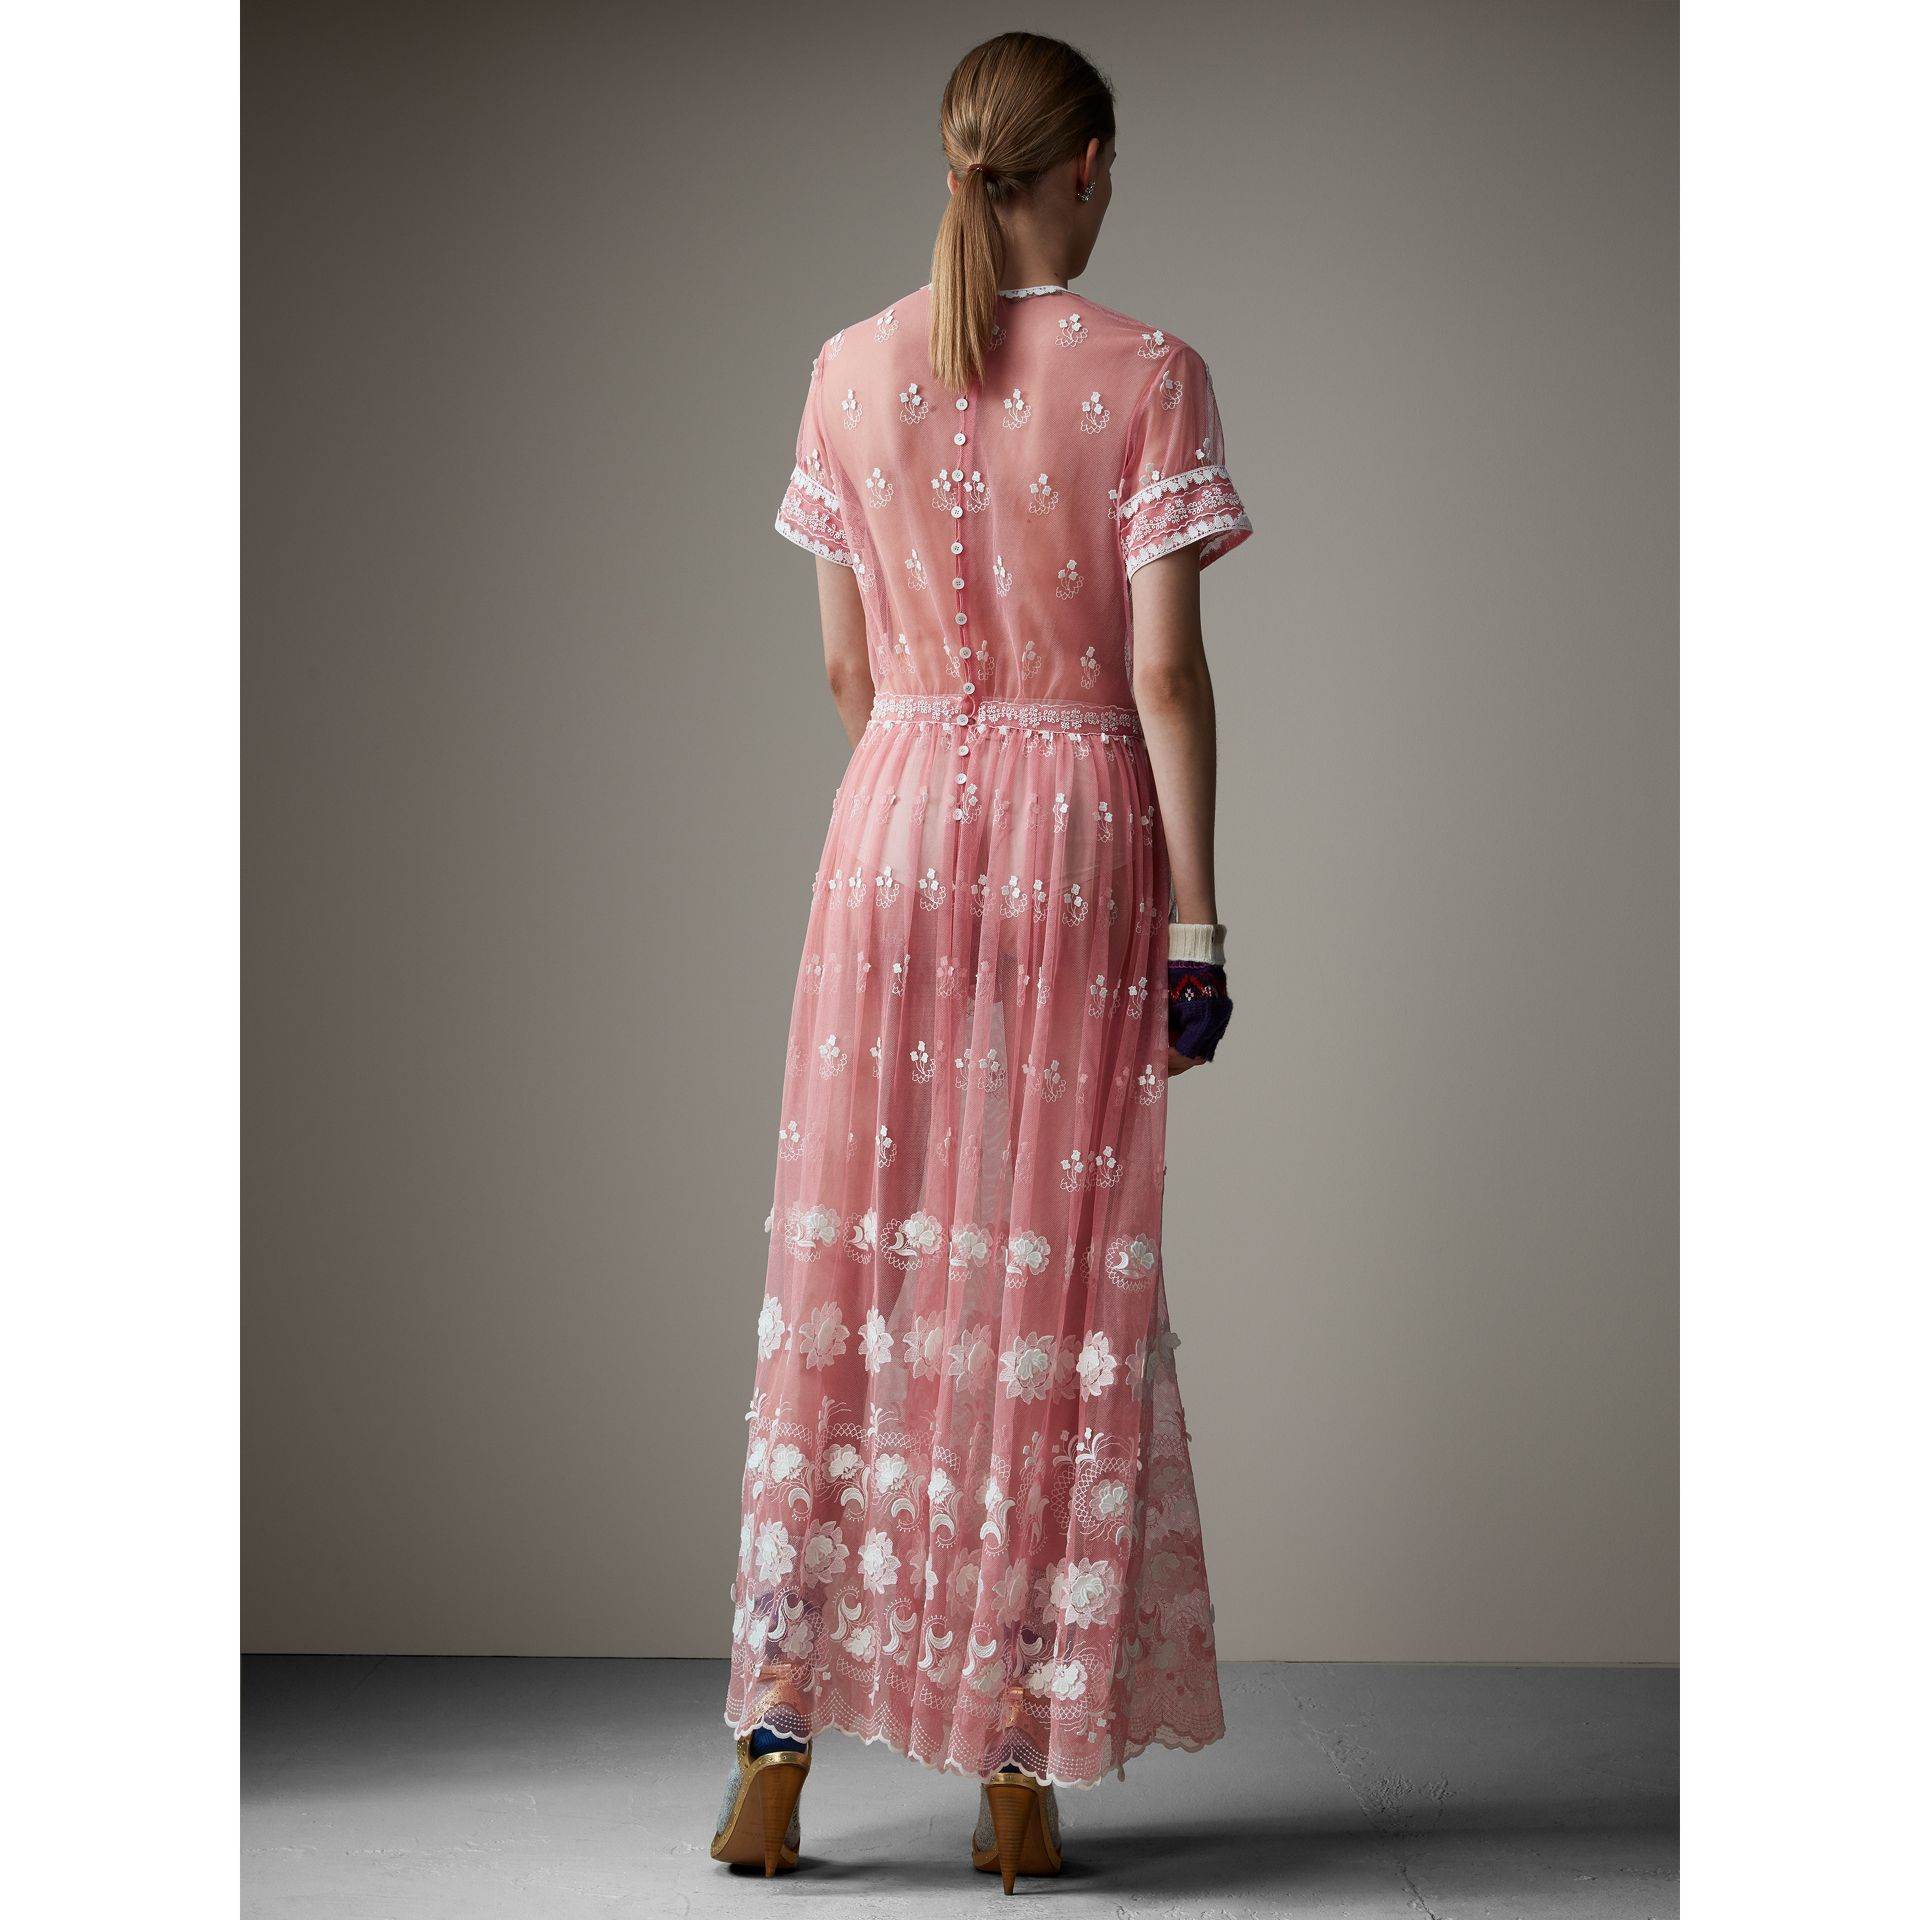 Short-sleeve Embroidered Tulle Dress in Rose Pink/white - Women | Burberry Australia - gallery image 2